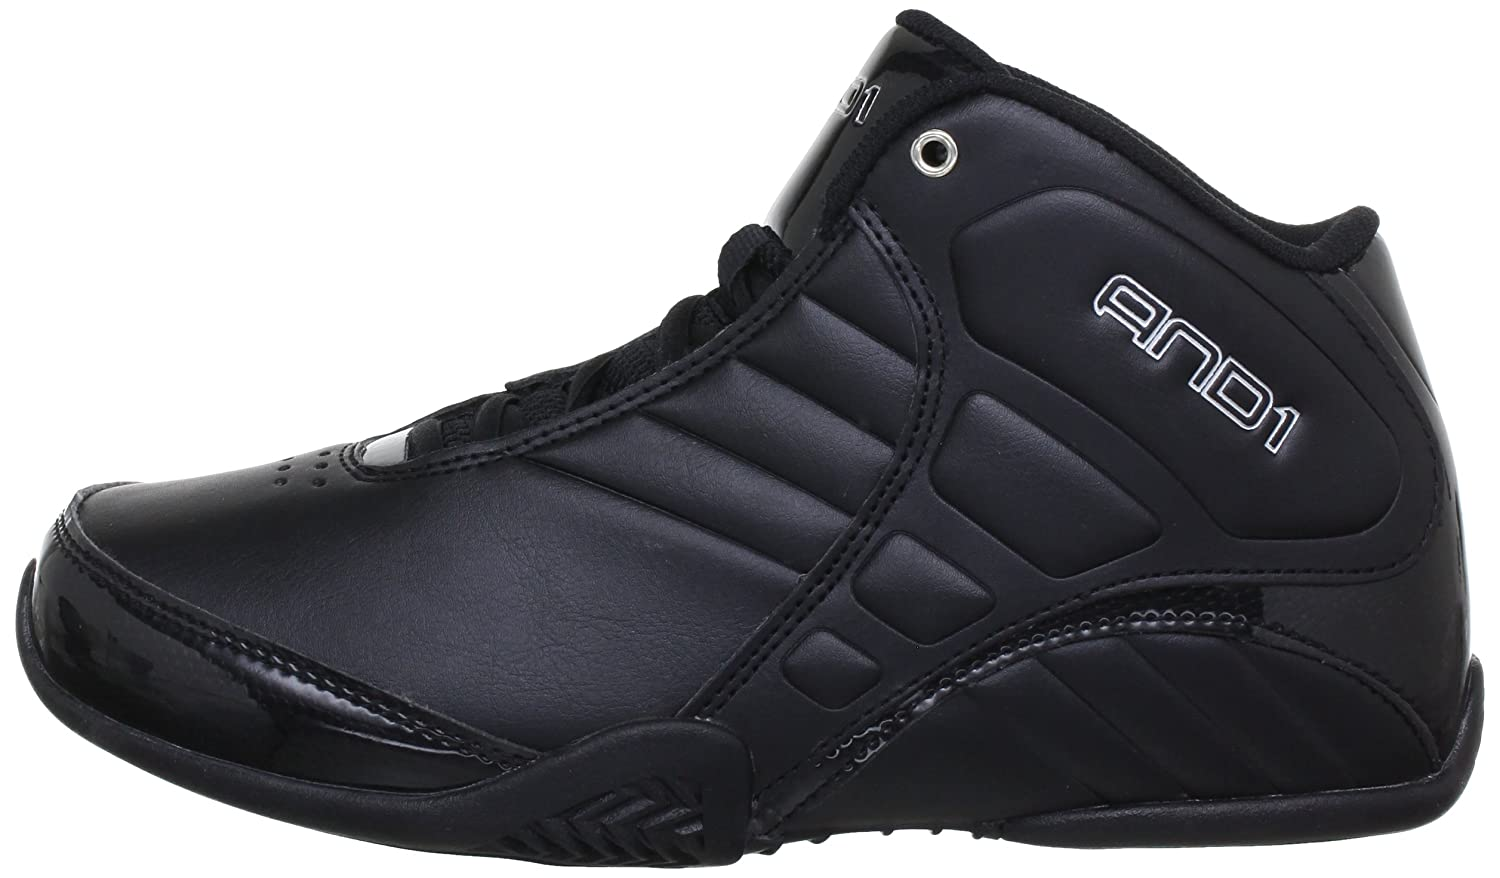 3e2916c9ed8 AND1 Men s Rocket 3.0 Mid Basketball Shoe Black  Amazon.ca  Shoes   Handbags